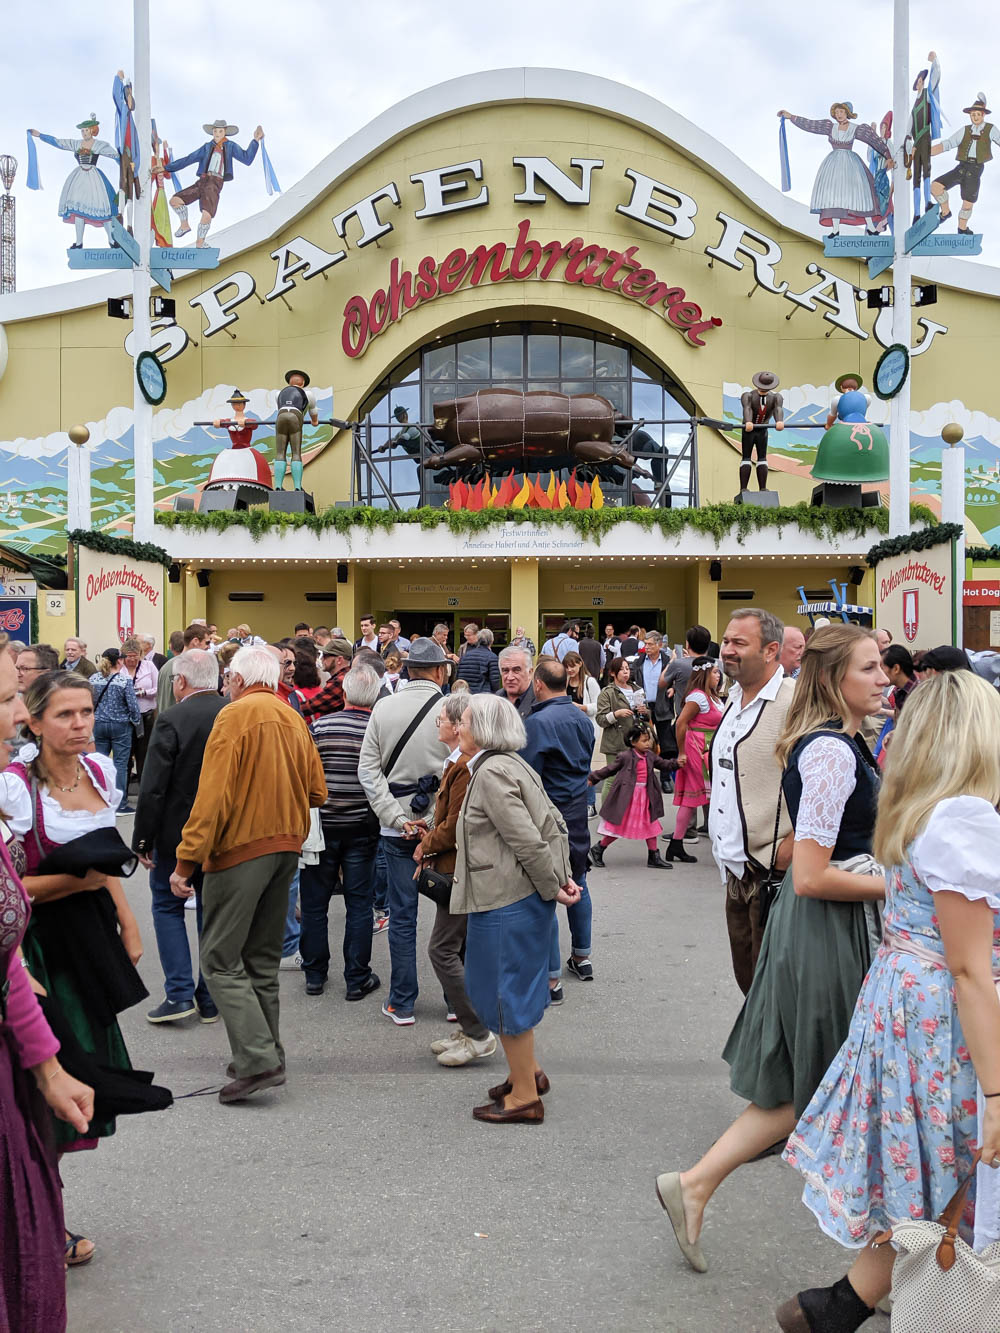 Some Interesting Things About The Oktoberfest USA